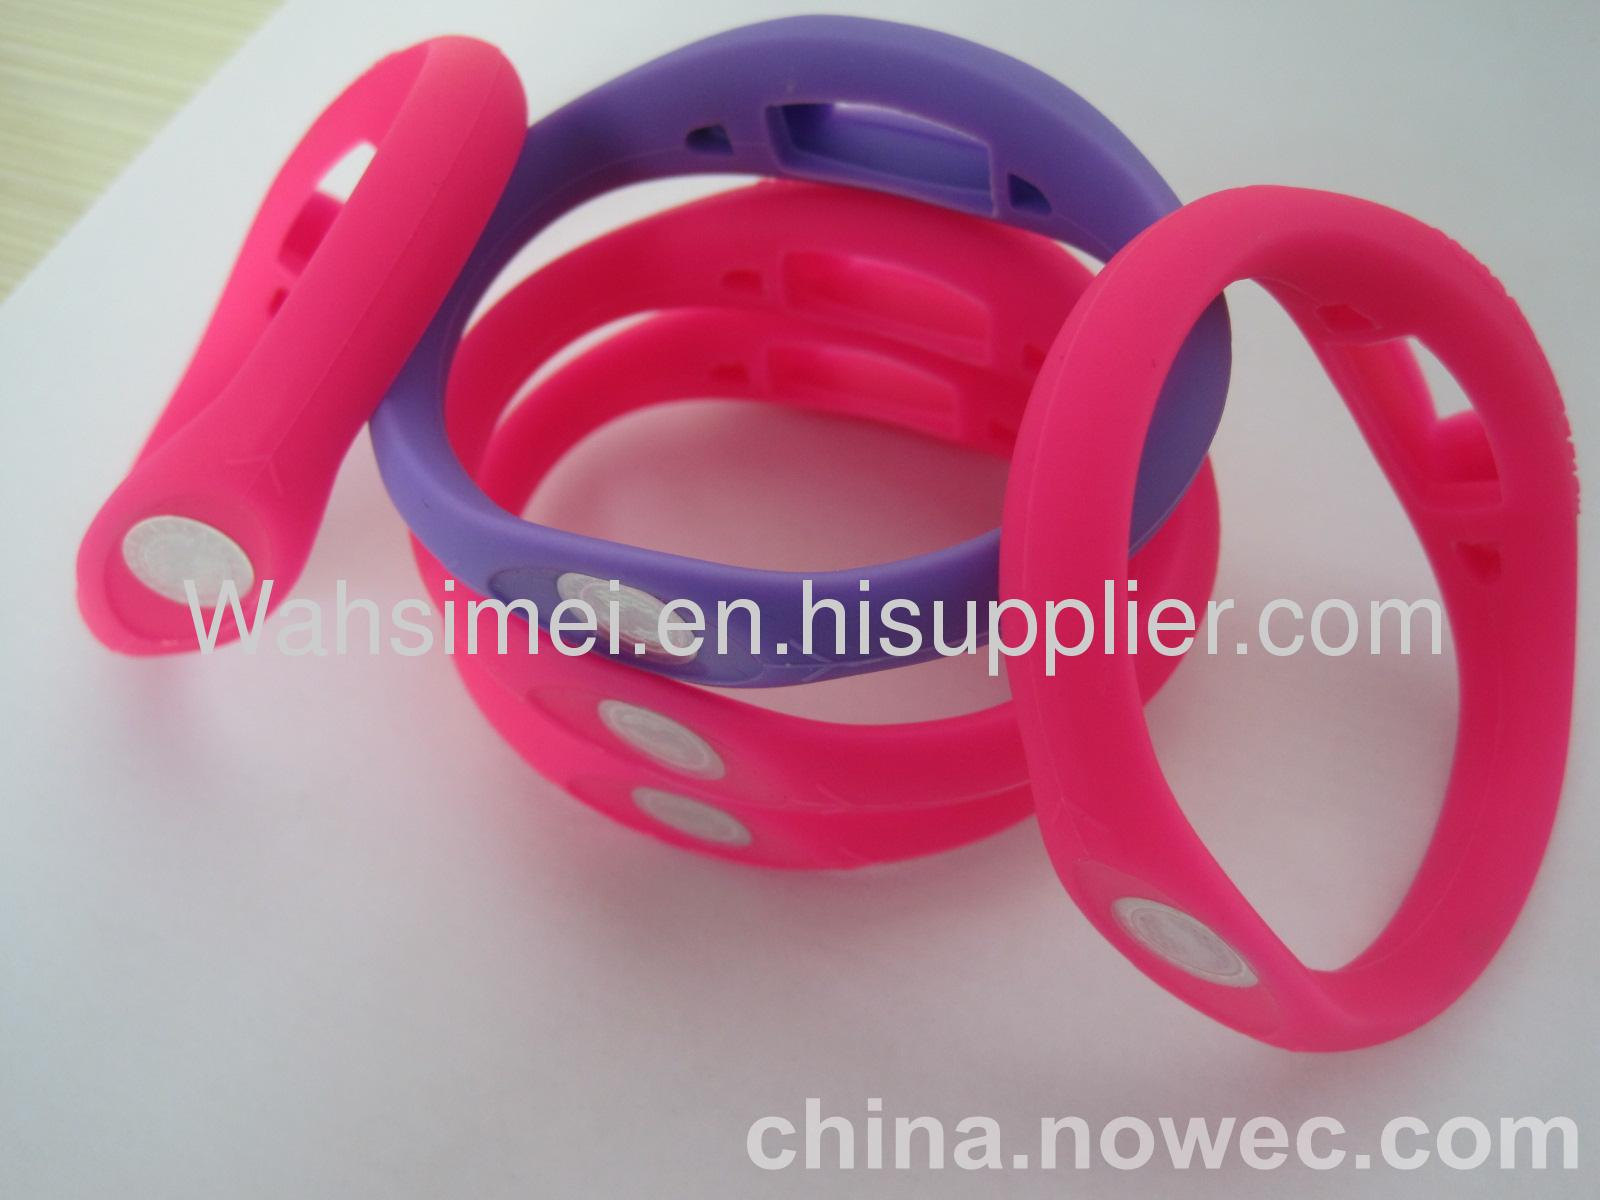 Cheaper price high quality silicone power bracelet